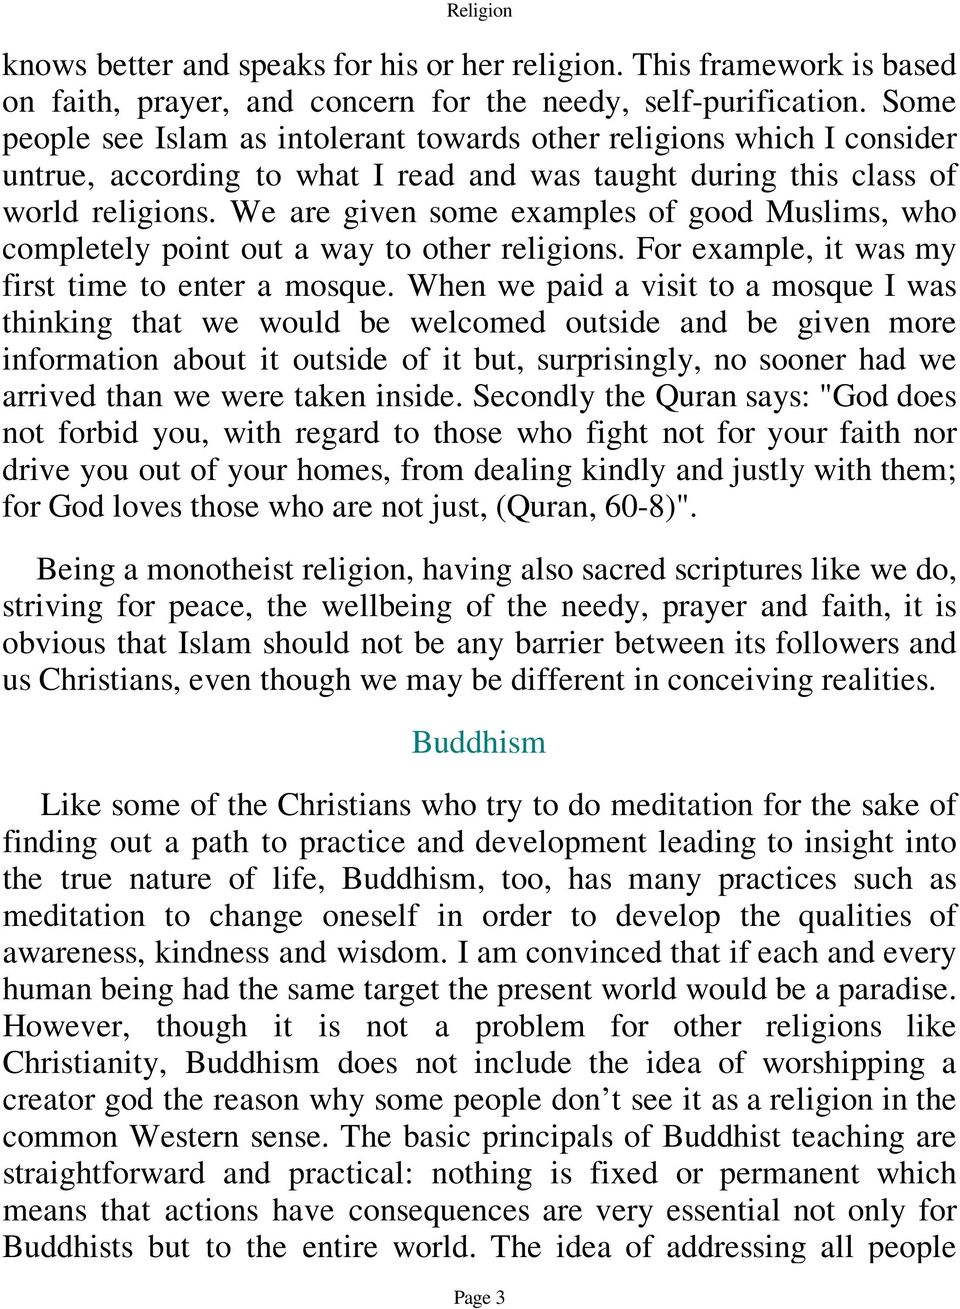 Some people see Islam as intolerant towards other religions which I consider untrue, according to what I read and was taught during this class of world religions.